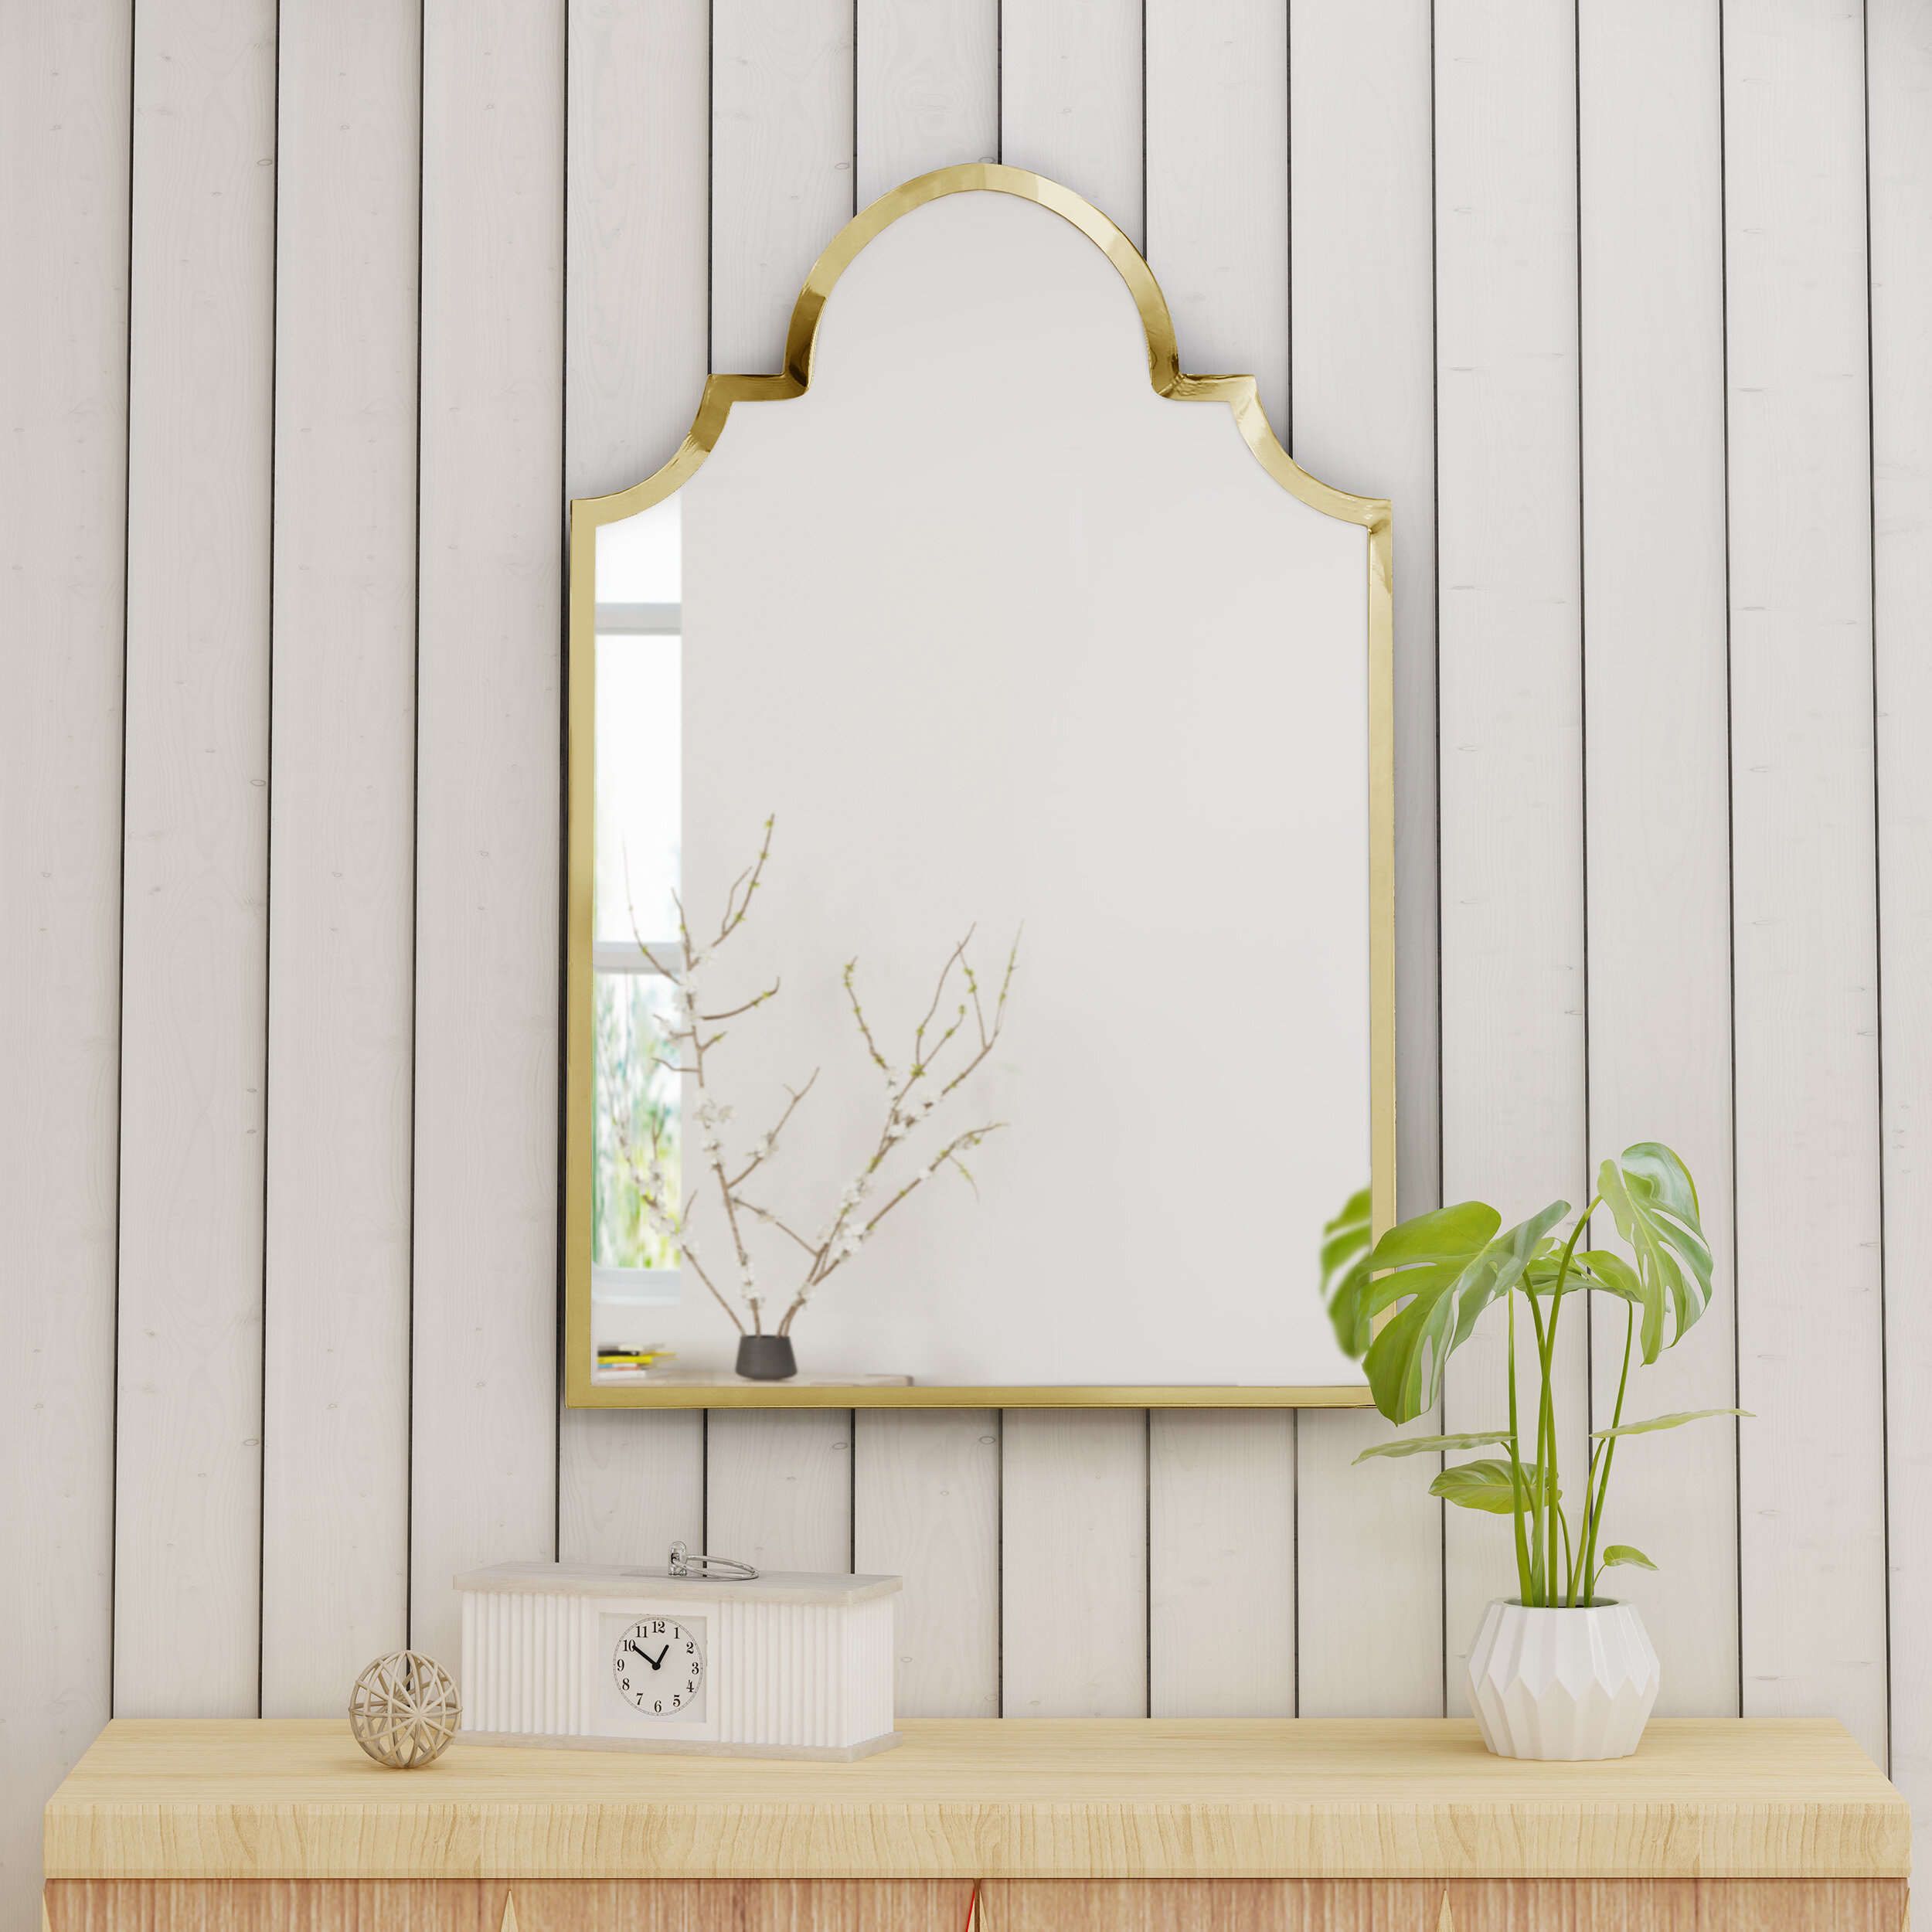 Cassel Modern & Contemporary Accent Mirror With Regard To Guidinha Modern & Contemporary Accent Mirrors (View 4 of 30)